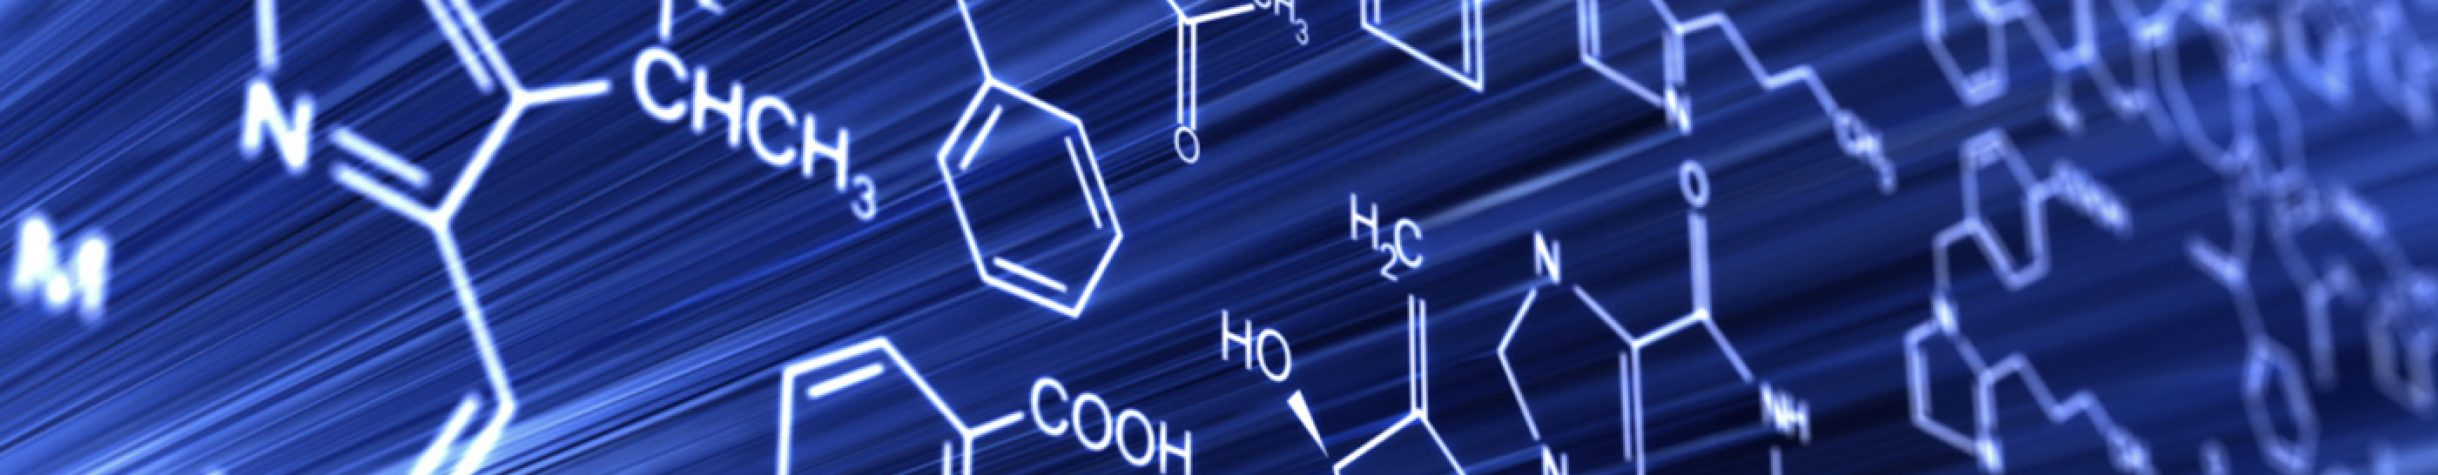 banner-Chemical-Material-Sciences